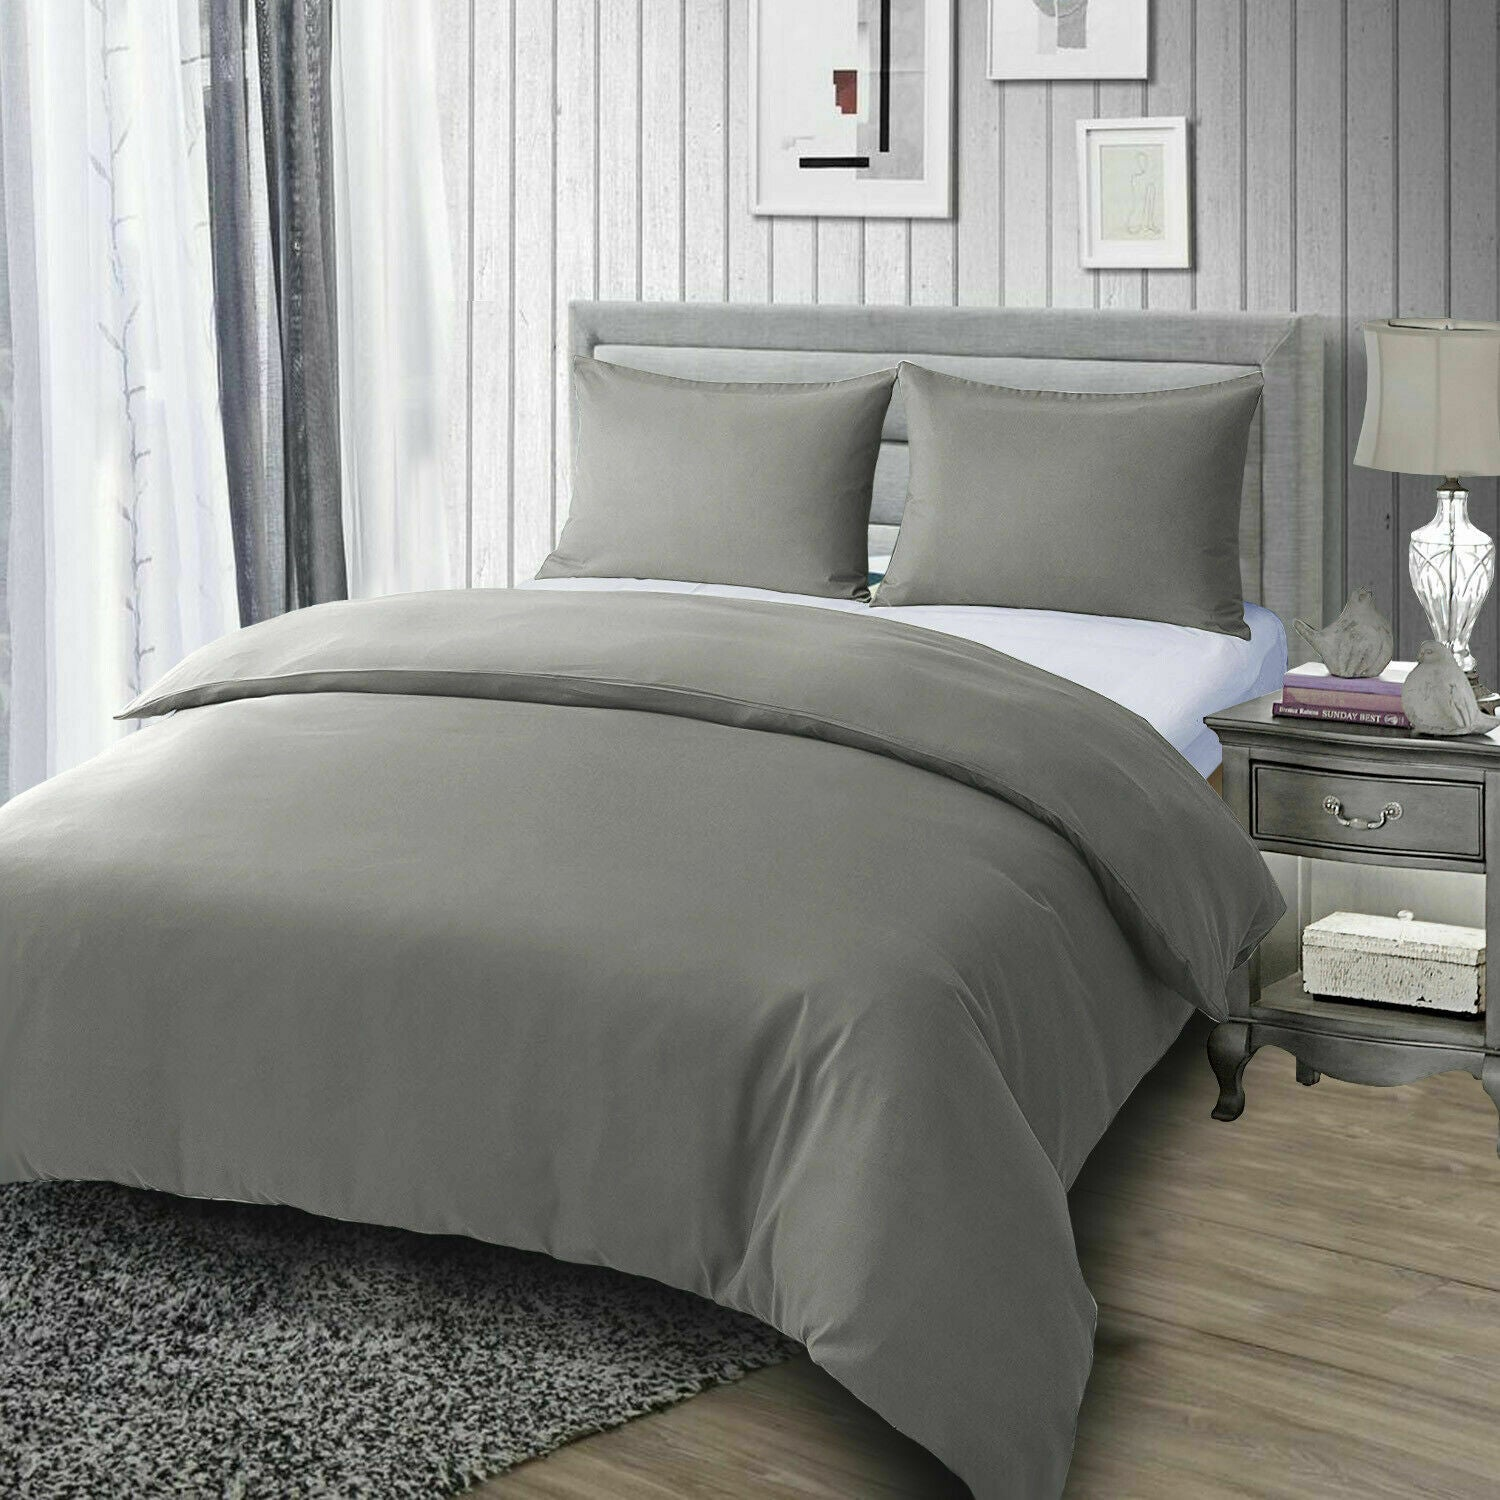 Duvet Cover & Pillowcase Set polycotton for superking bed